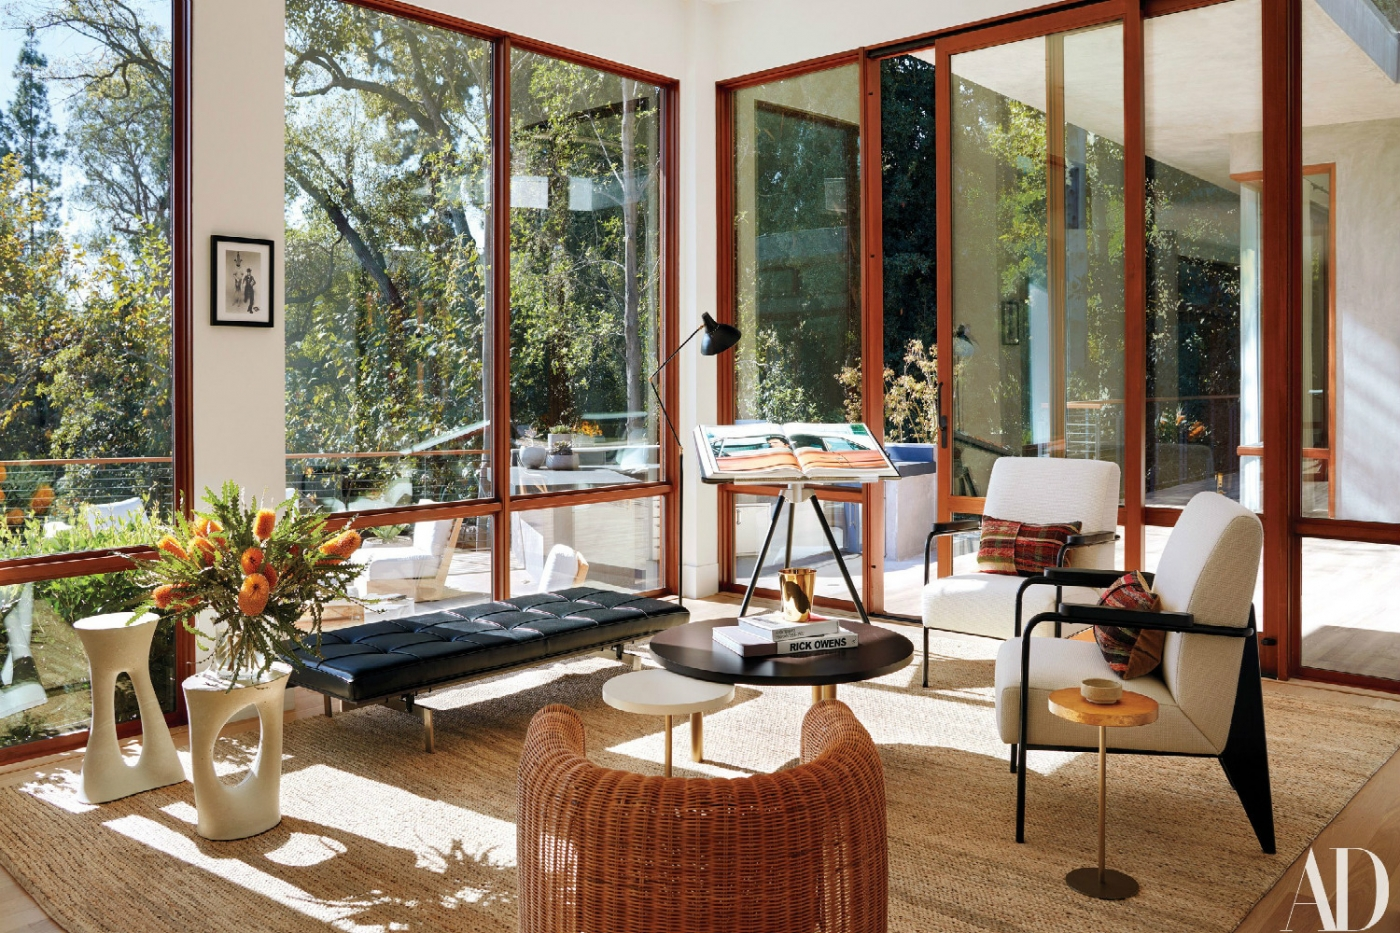 Inside-Ricky-Martin's-Home-in-Beverly-Hills-–-A-Project-by-Nate-Berkus-featured-1-1400x933.jpg